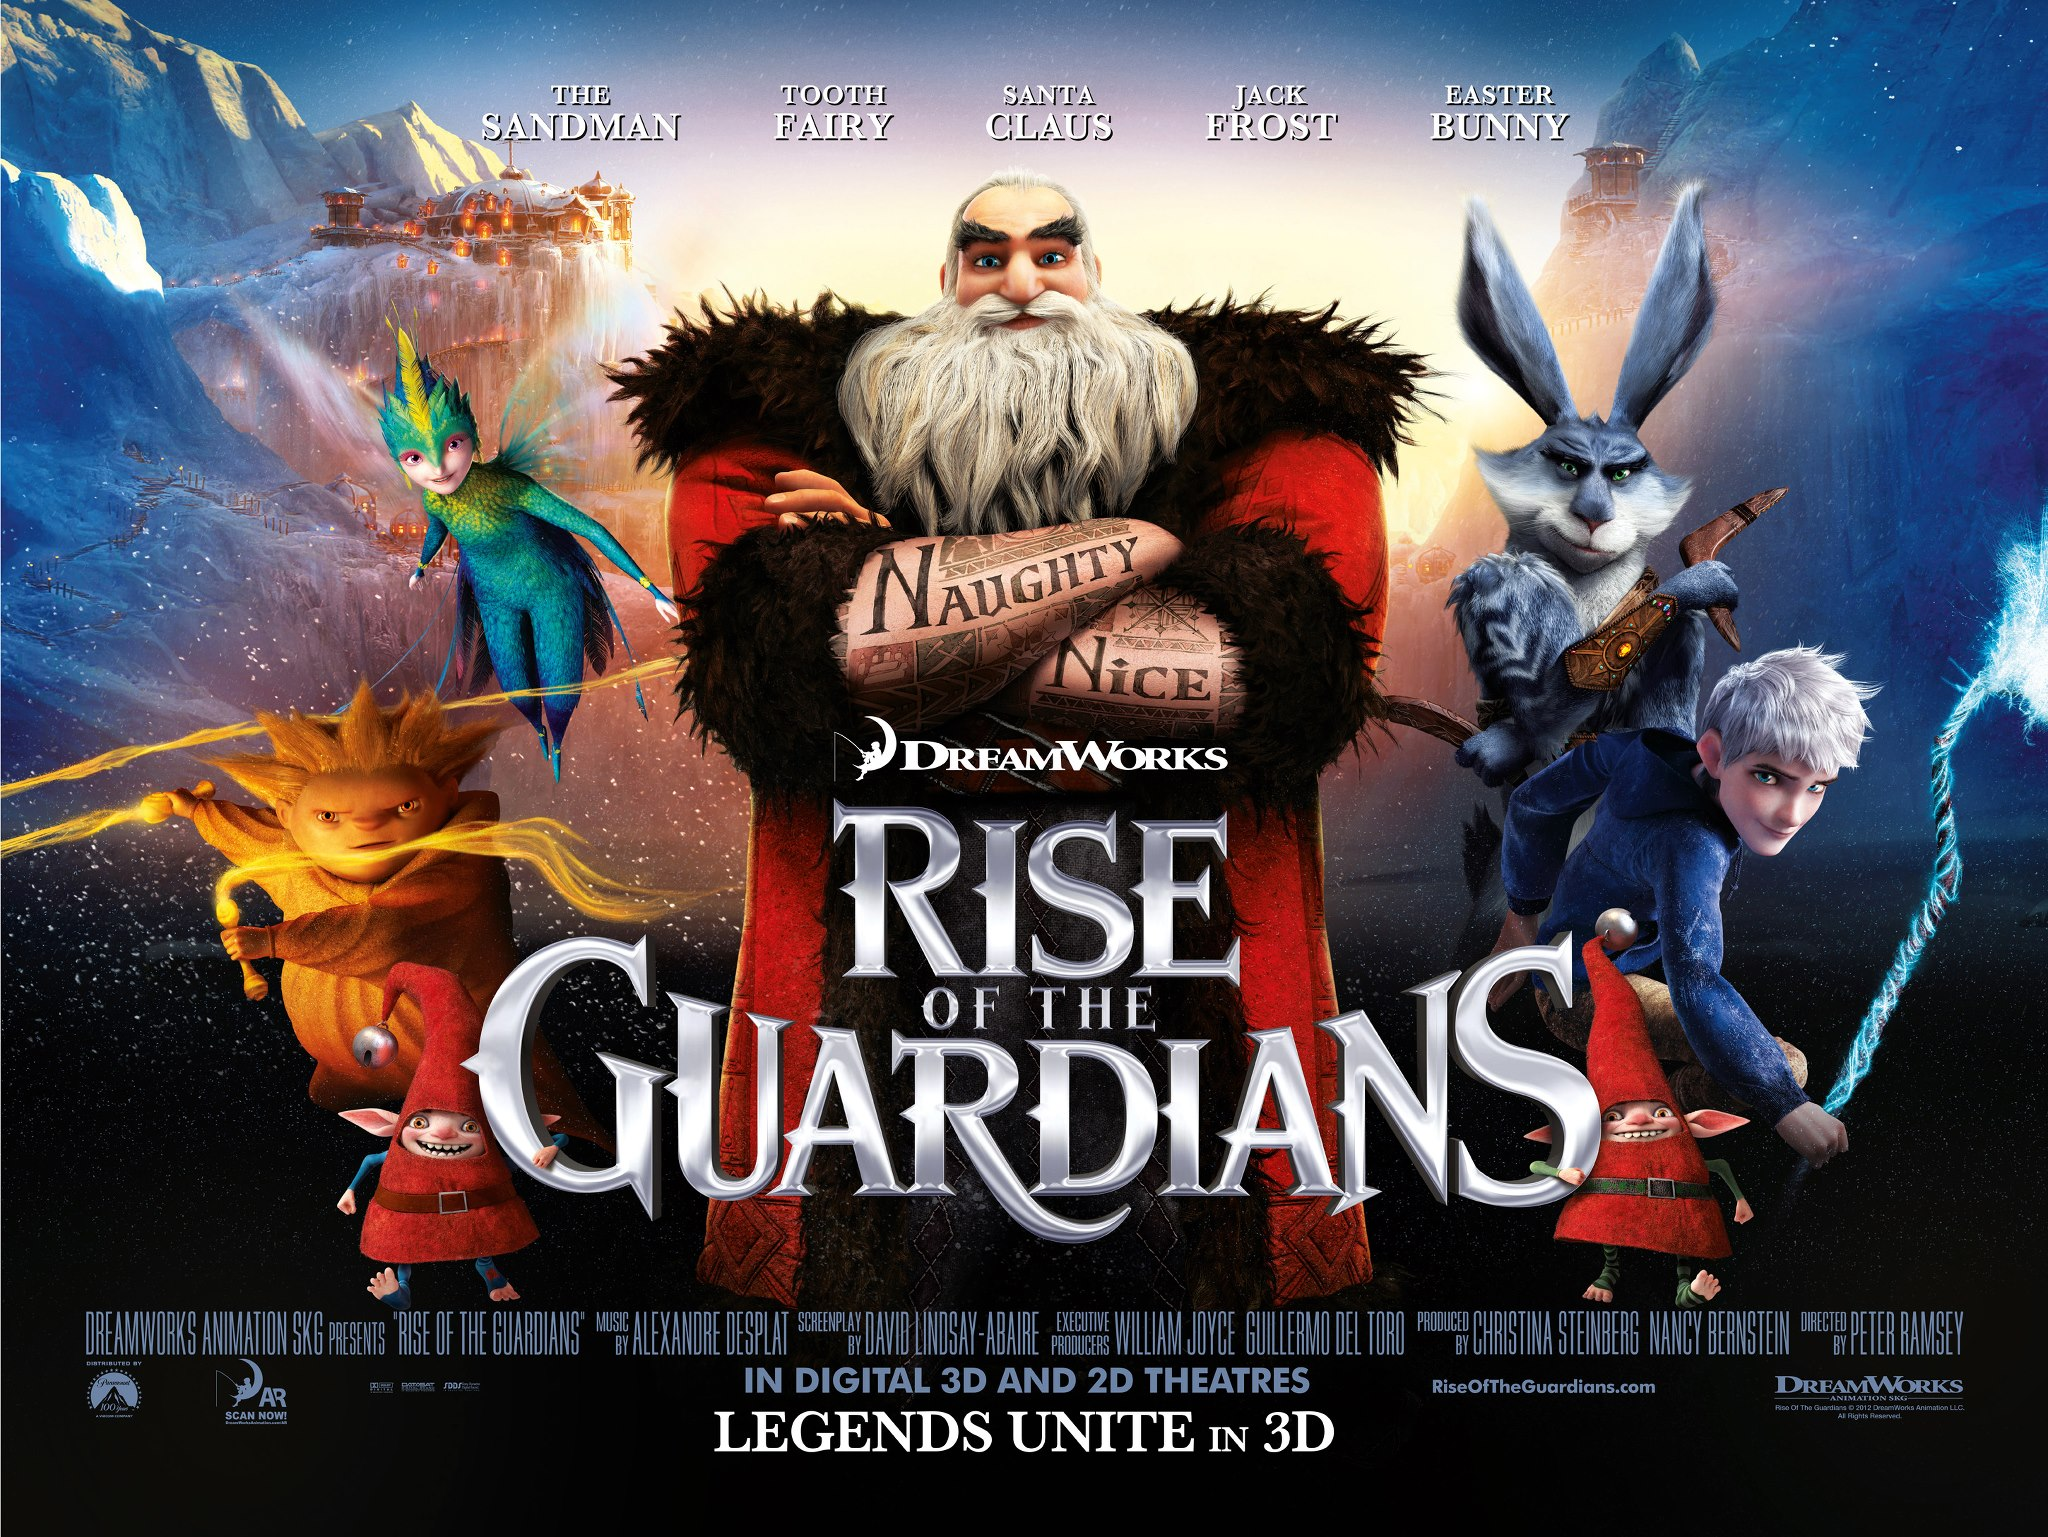 rise of the guardians holiday classic is born with the spirit of